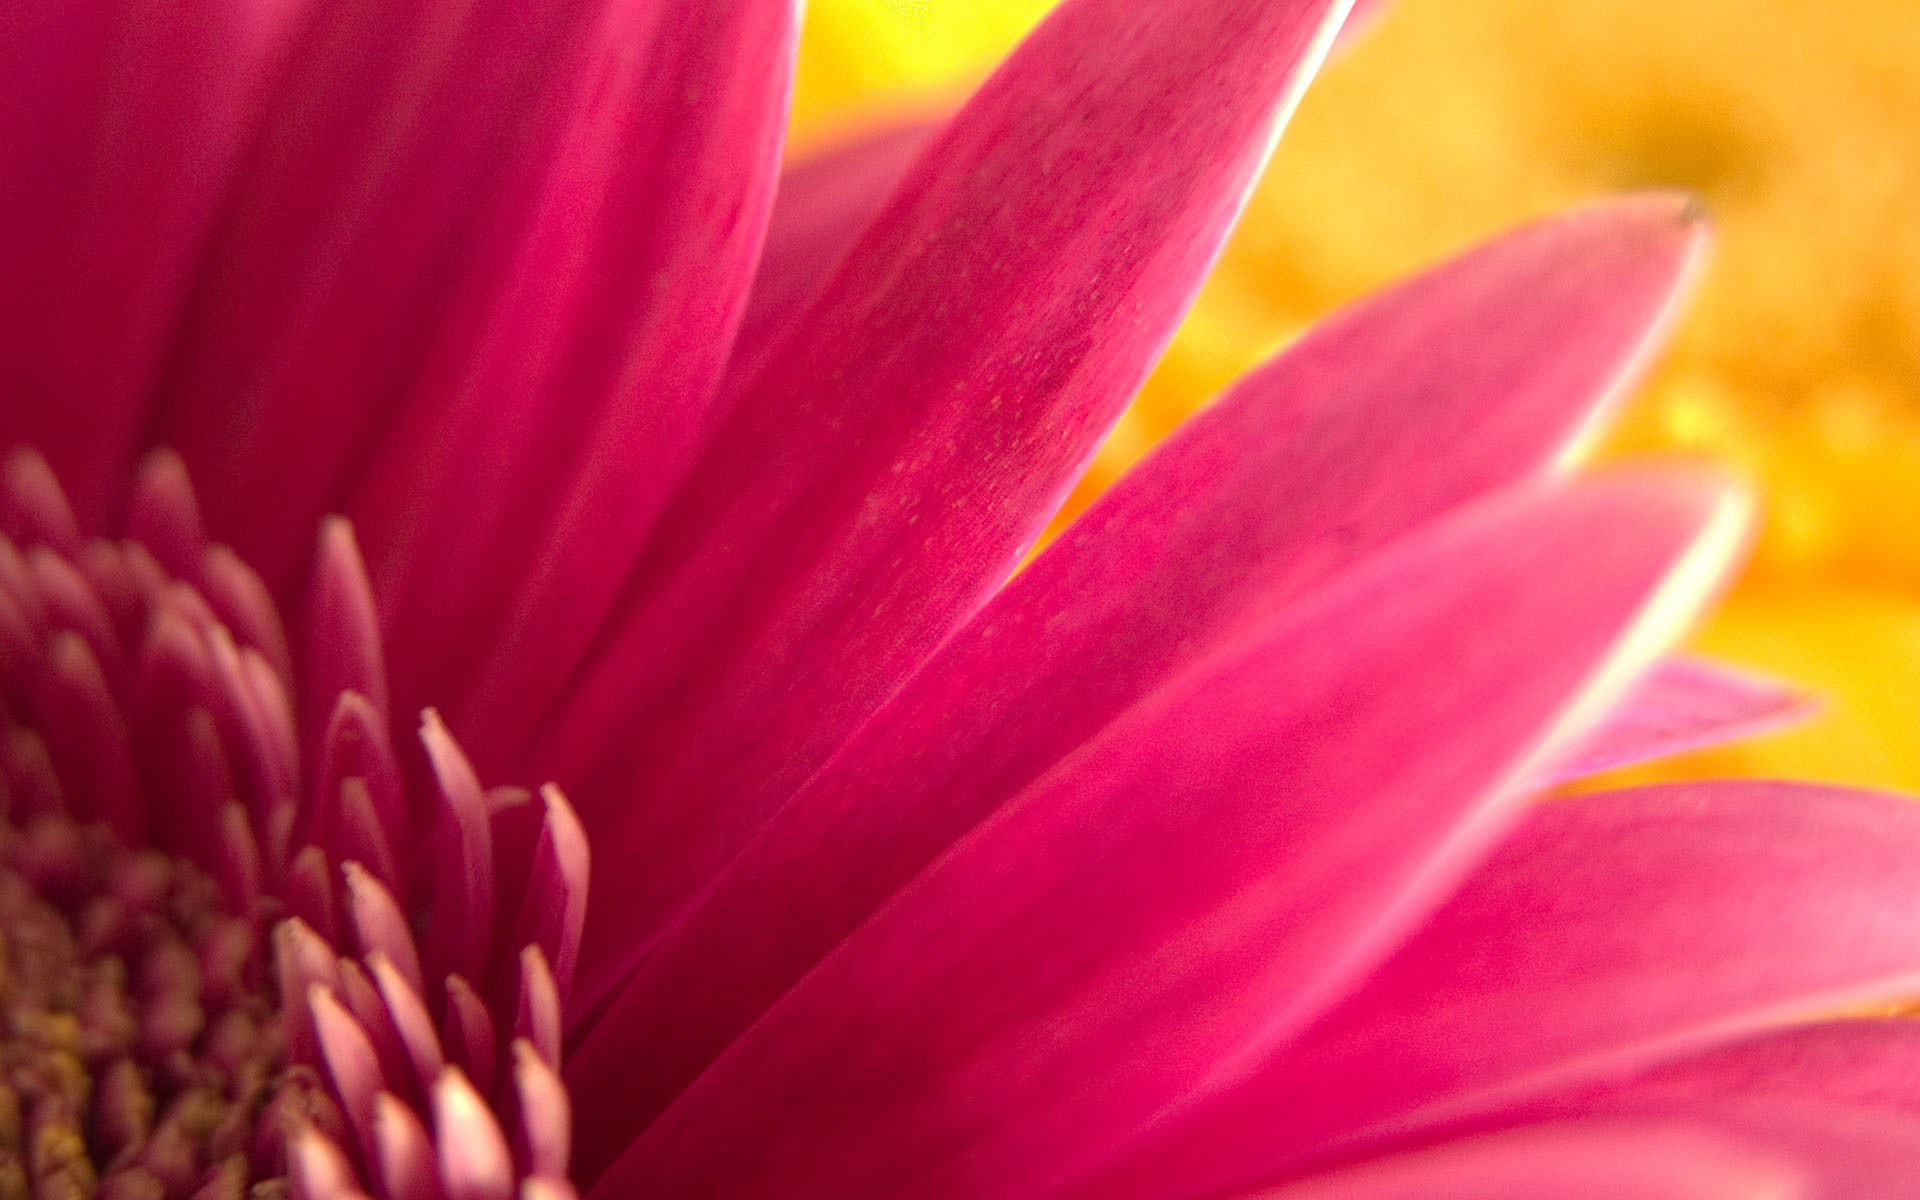 Flowers pink HD Wallpaper